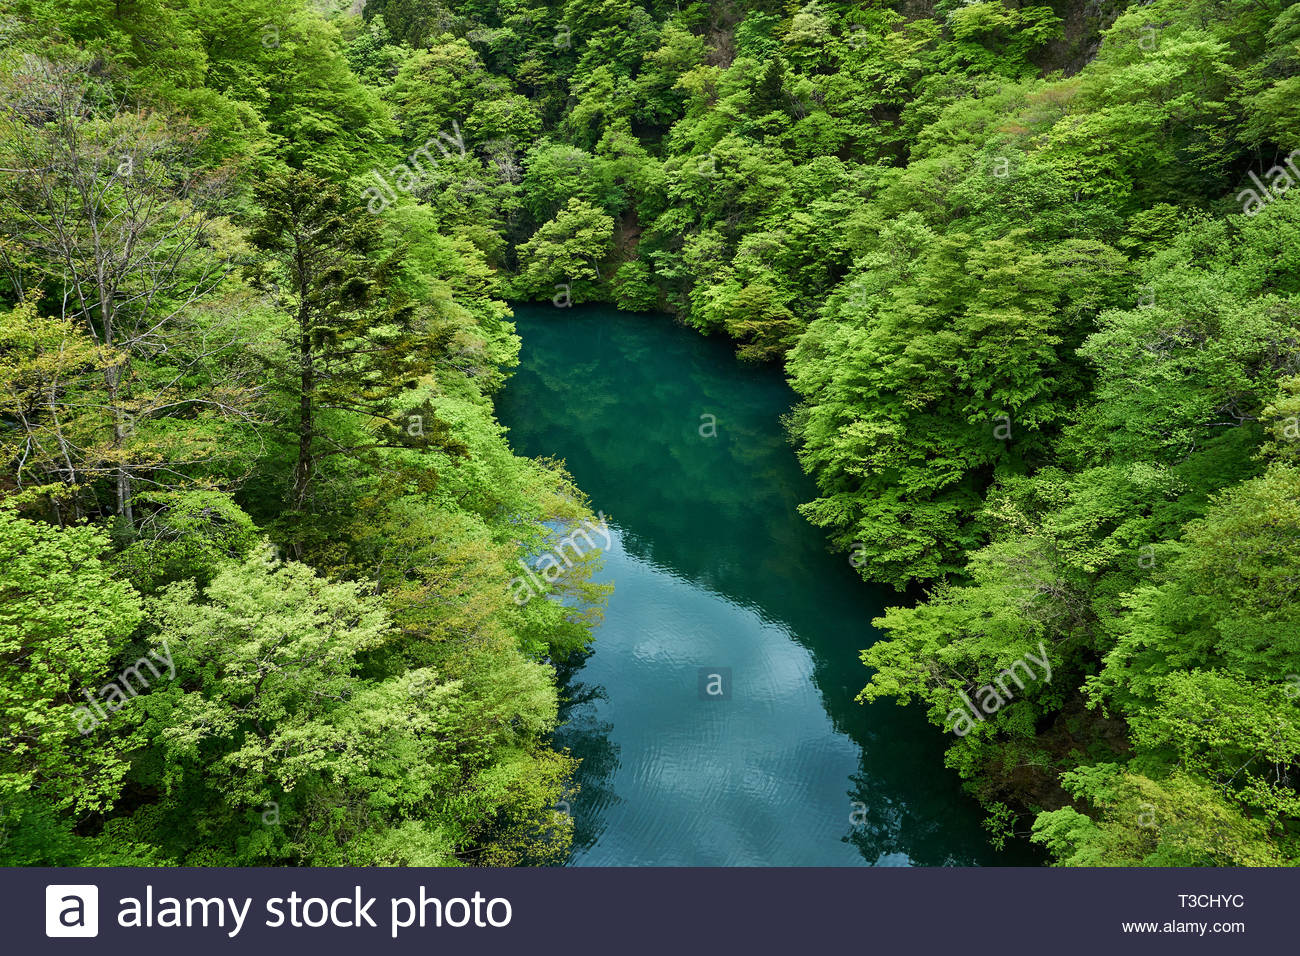 Deciduous trees growing on mountainsides reflect in the blue green water of a river in Sarugakyo village in Minakami, Gunma, Japan, in late spring. - Stock Image